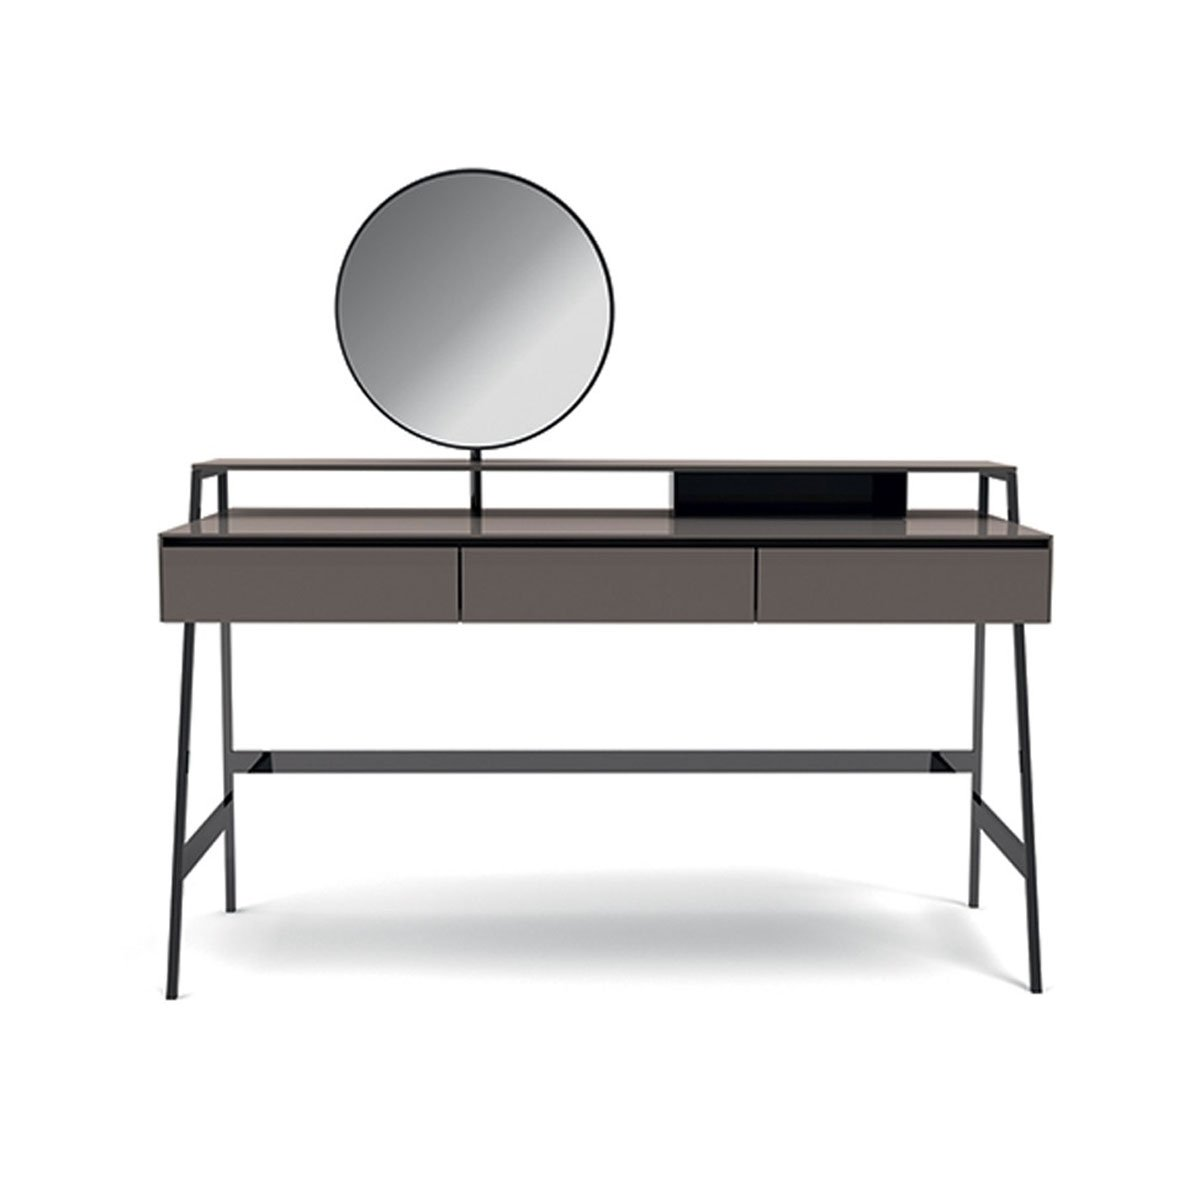 Venere luxury glass desk by gallotti radice klarity glass for Glass furniture